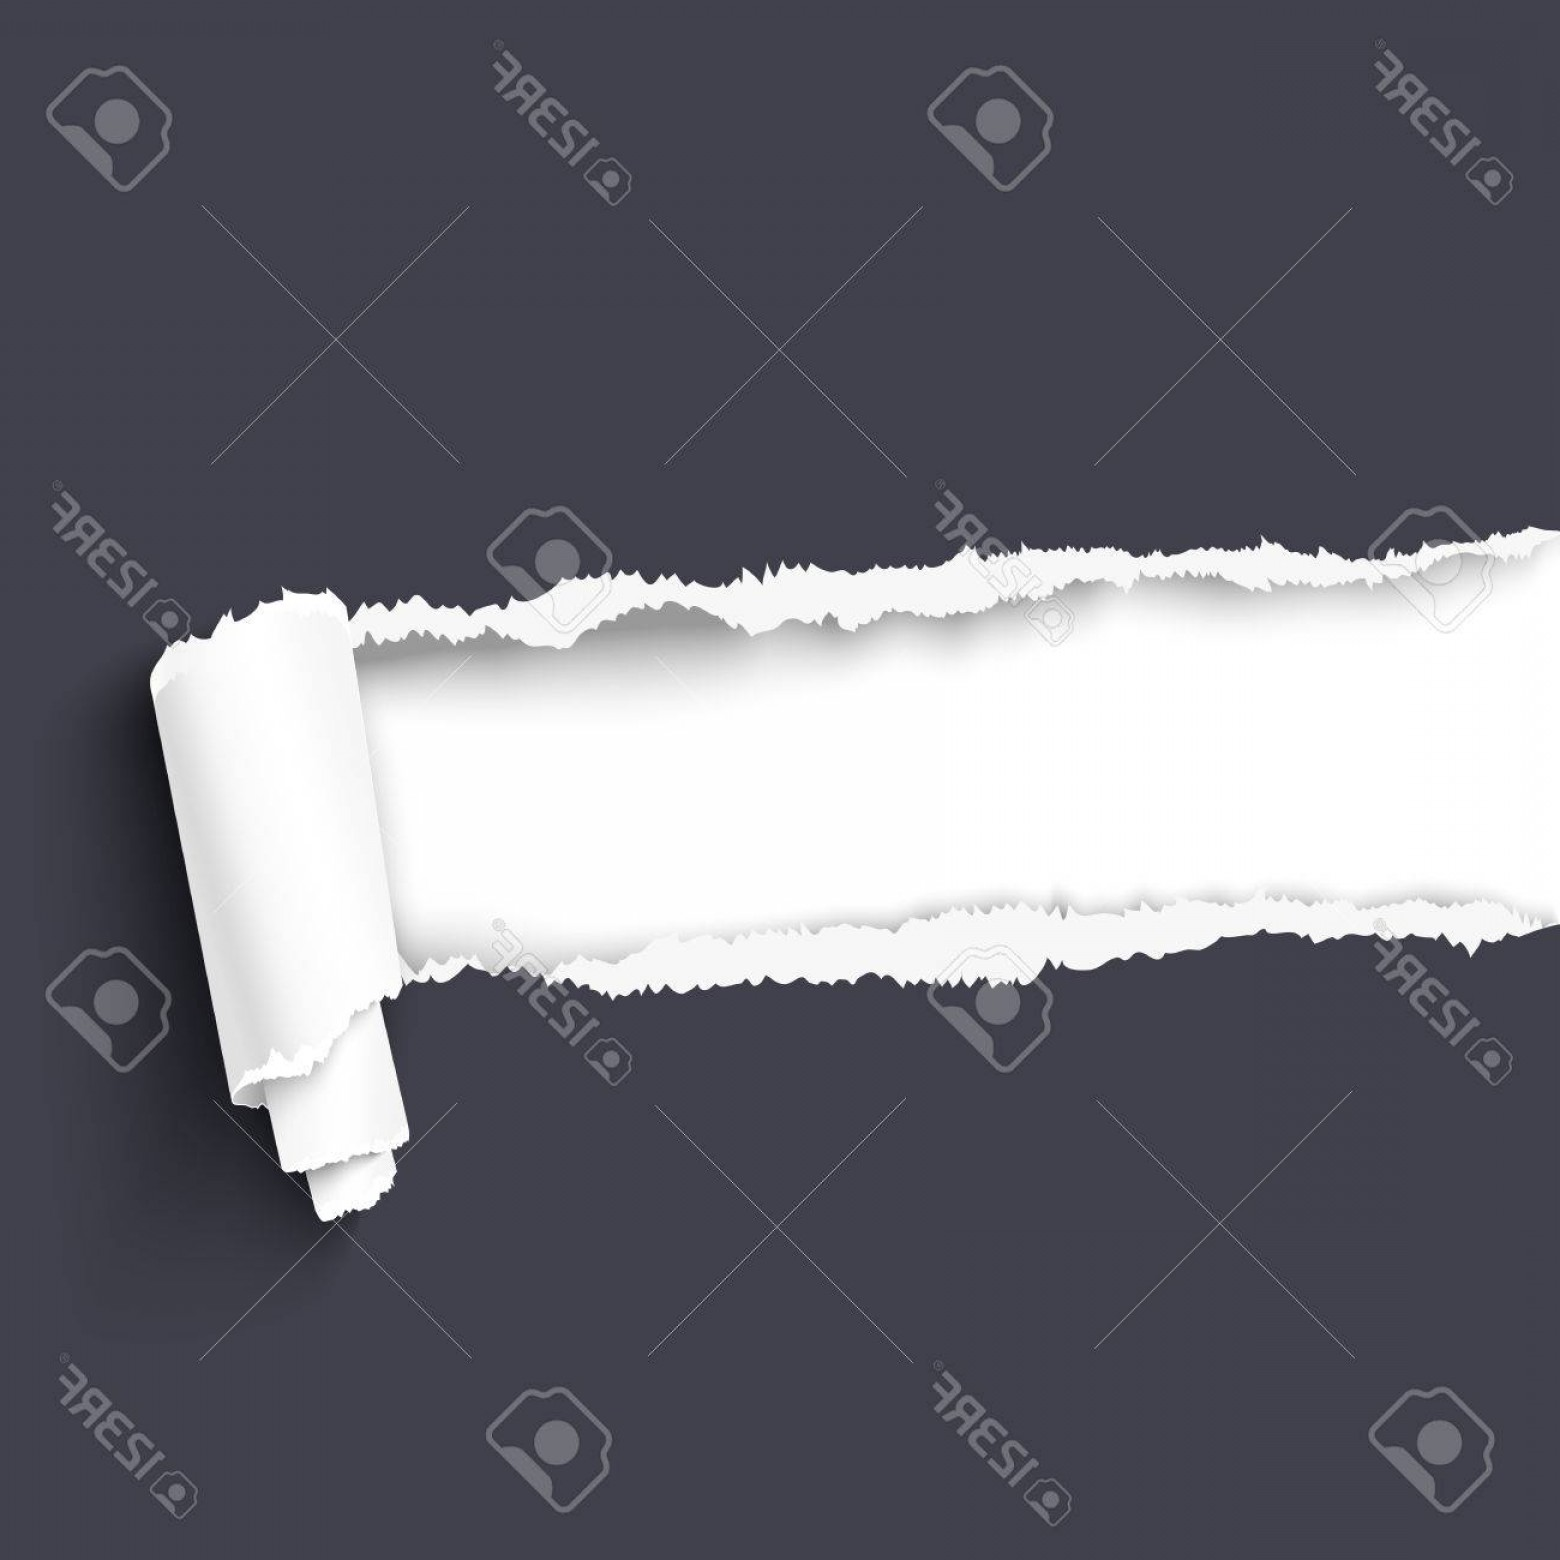 Ripped Black And White Vector: Photostock Vector Dark Torn Paper With Paper Scroll Over White Background With Copy Space For Your Text Paper With Rip